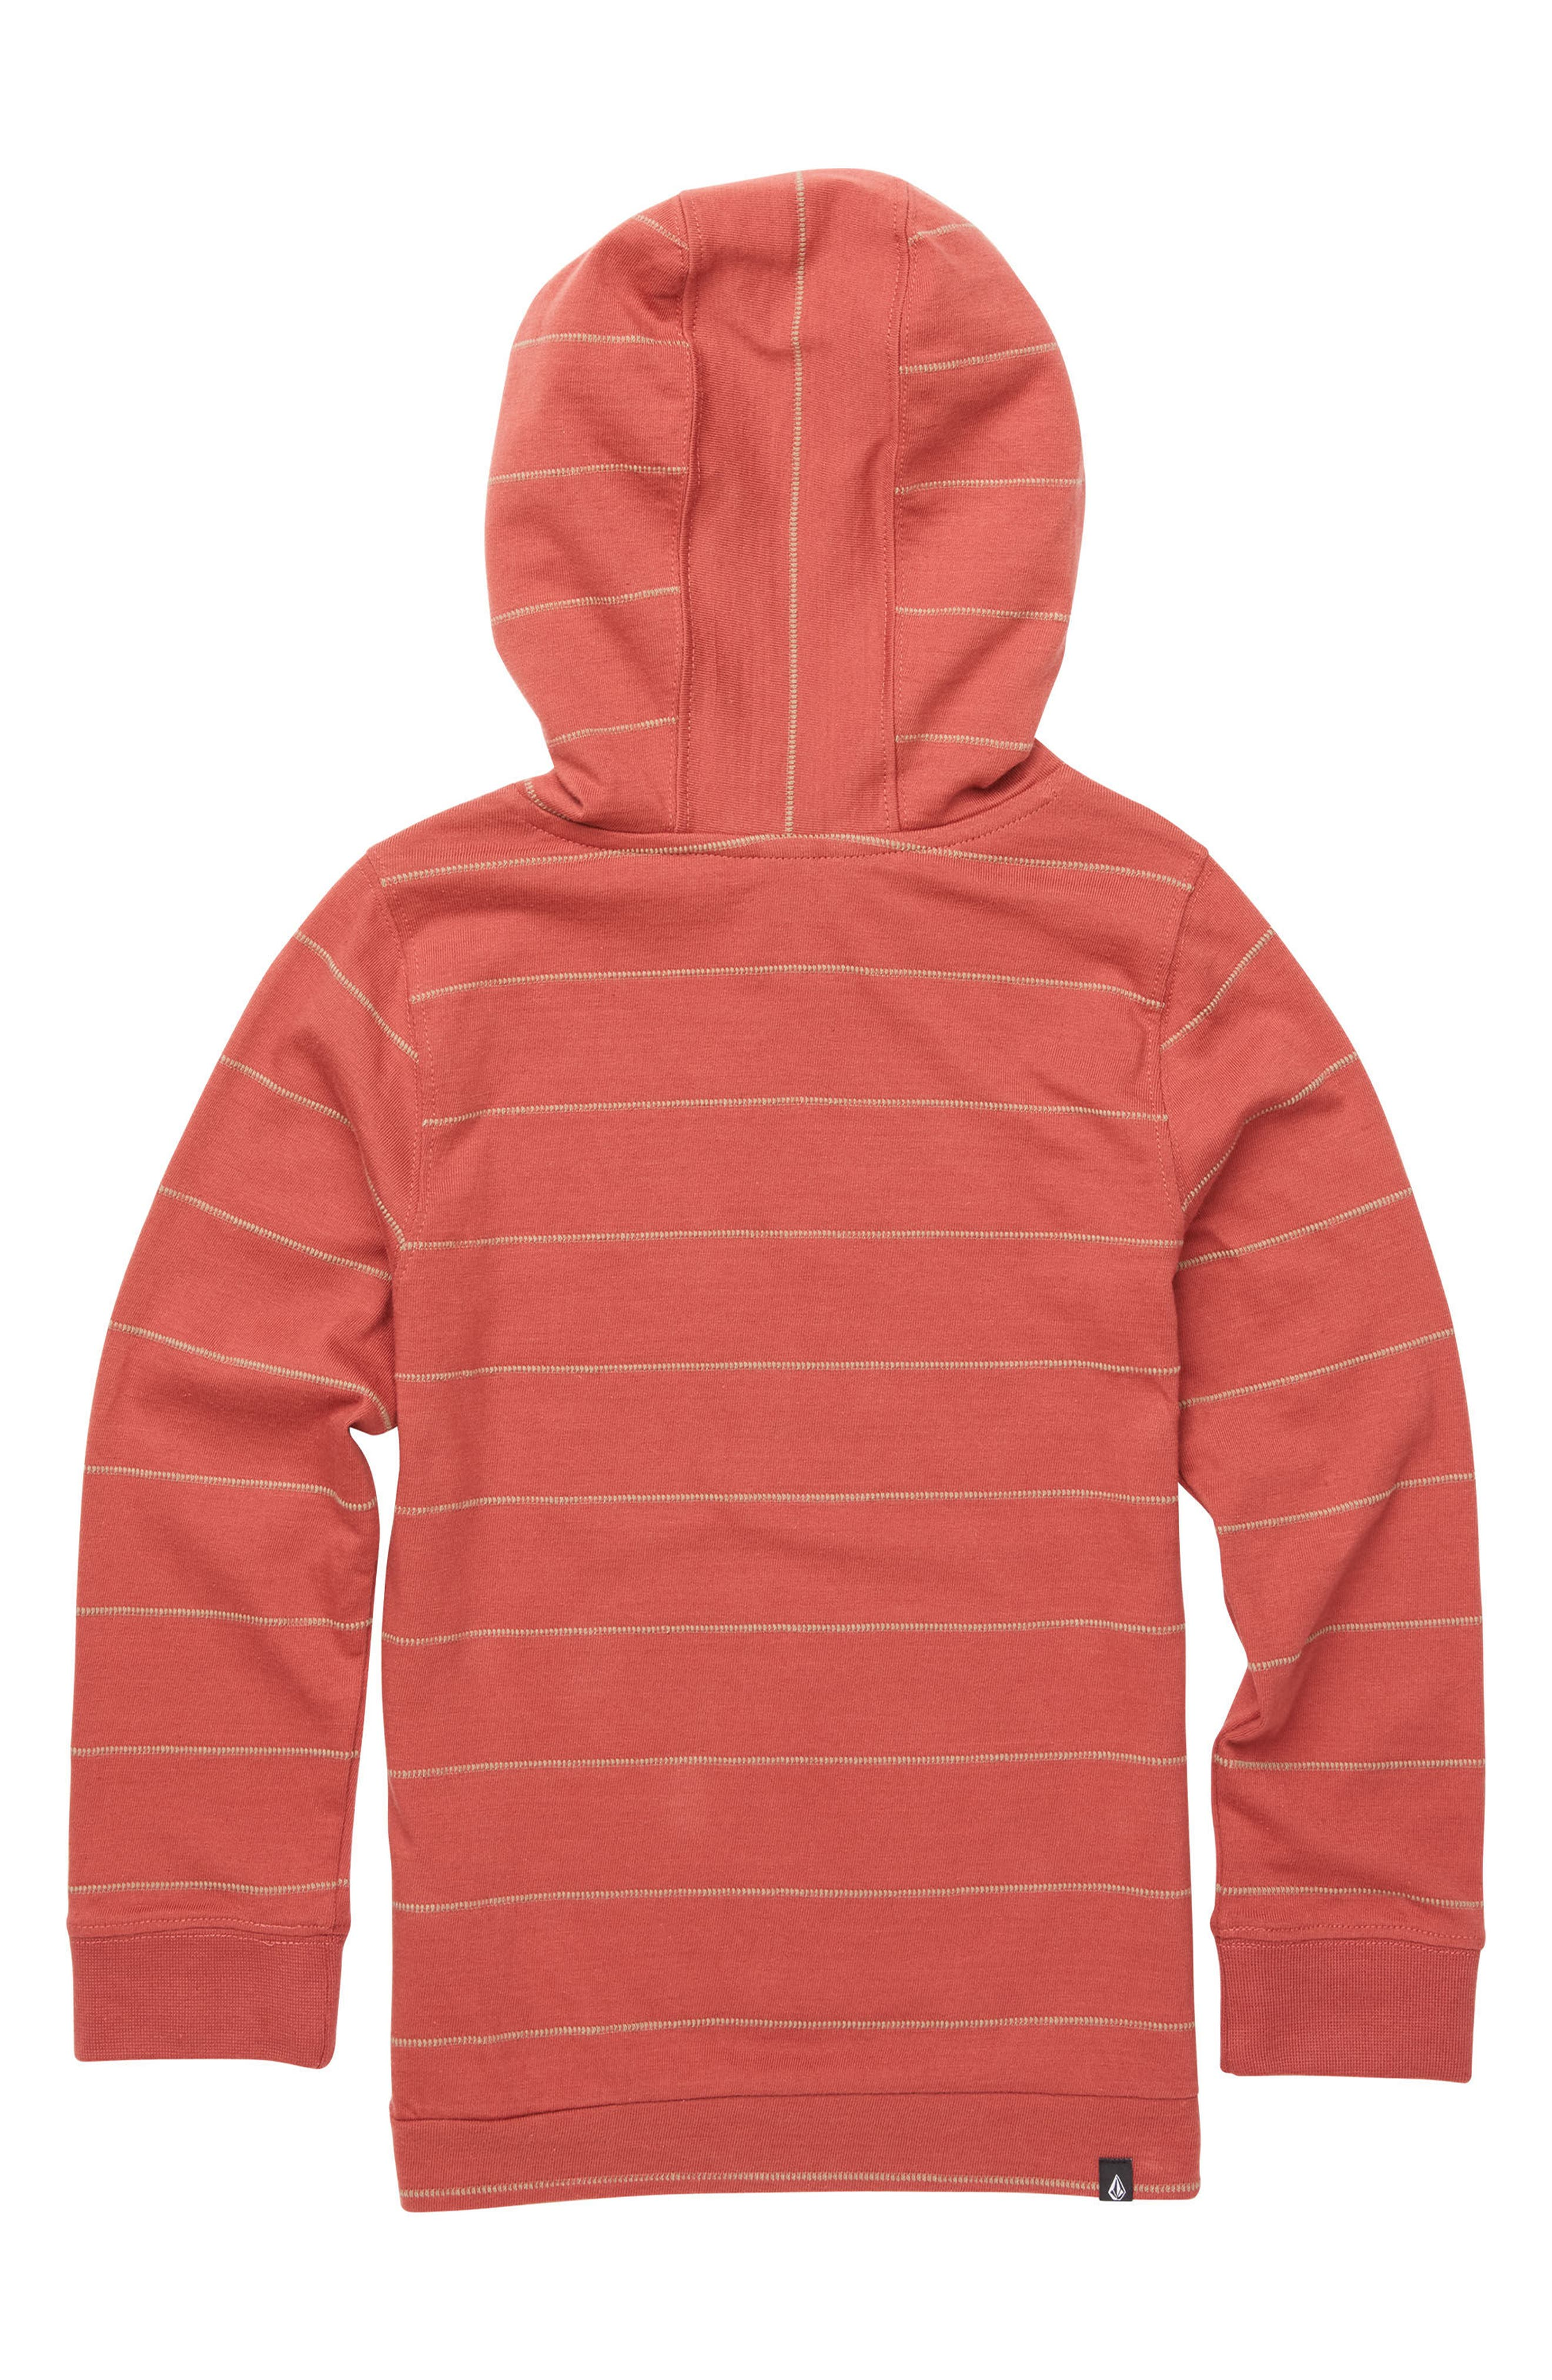 Wallace Knit Hoodie,                             Alternate thumbnail 2, color,                             Dead Rose